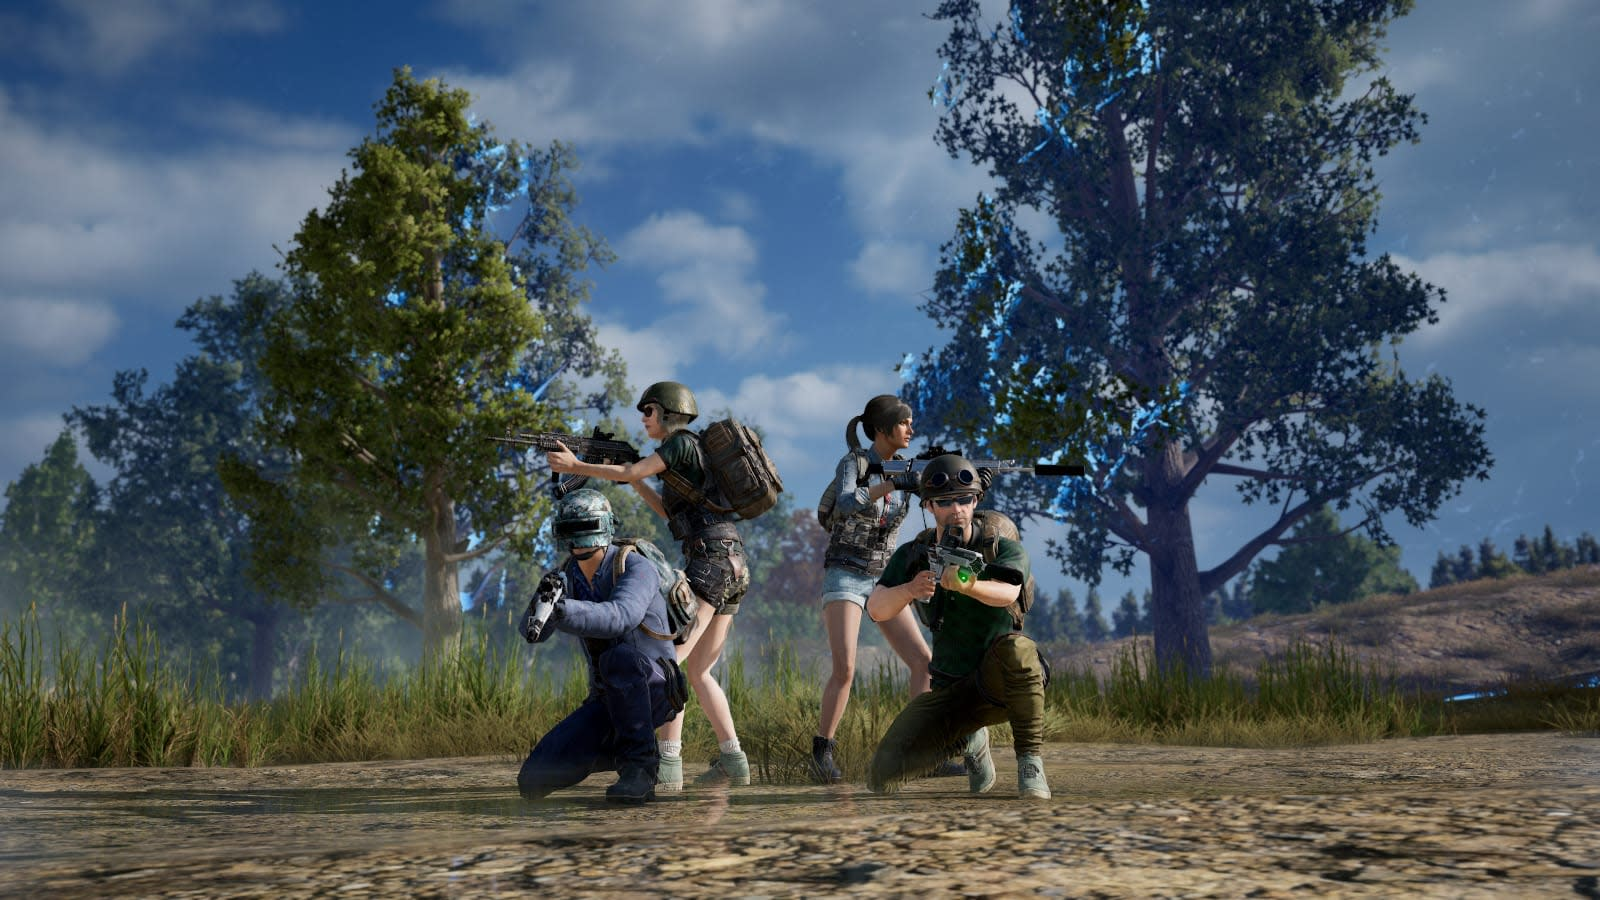 Pubg Cross Party Play Capability For Ps4 And Xbox One Has Arrived